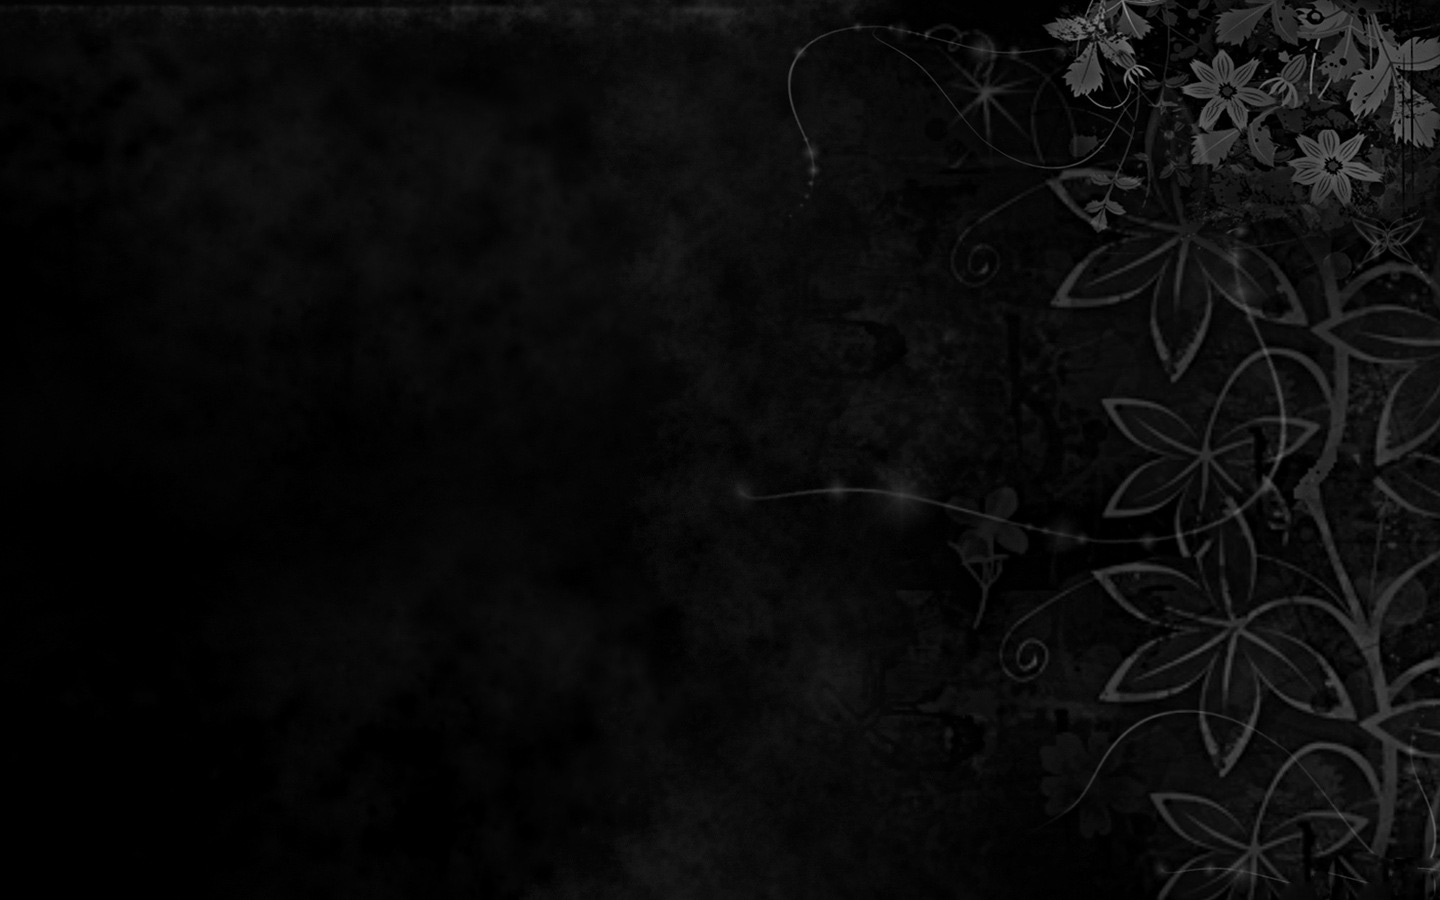 Dark Background 07 Wallpaper Free Images Pictures Download